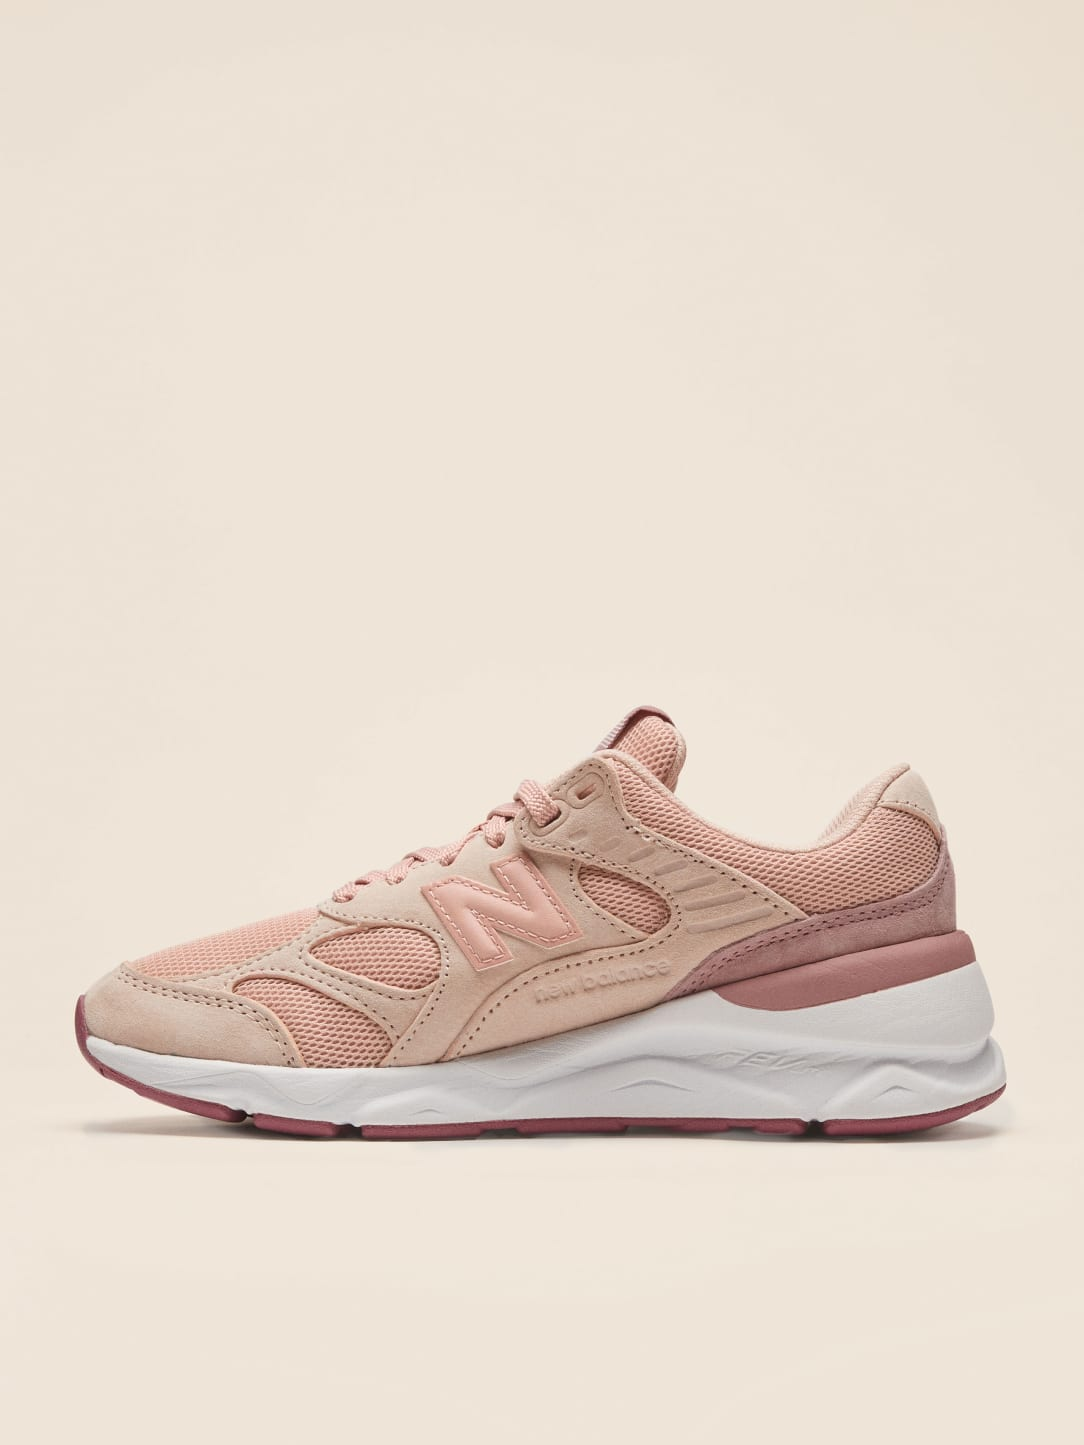 9. New Balance X Reformation X90 ecof riendly running shoes